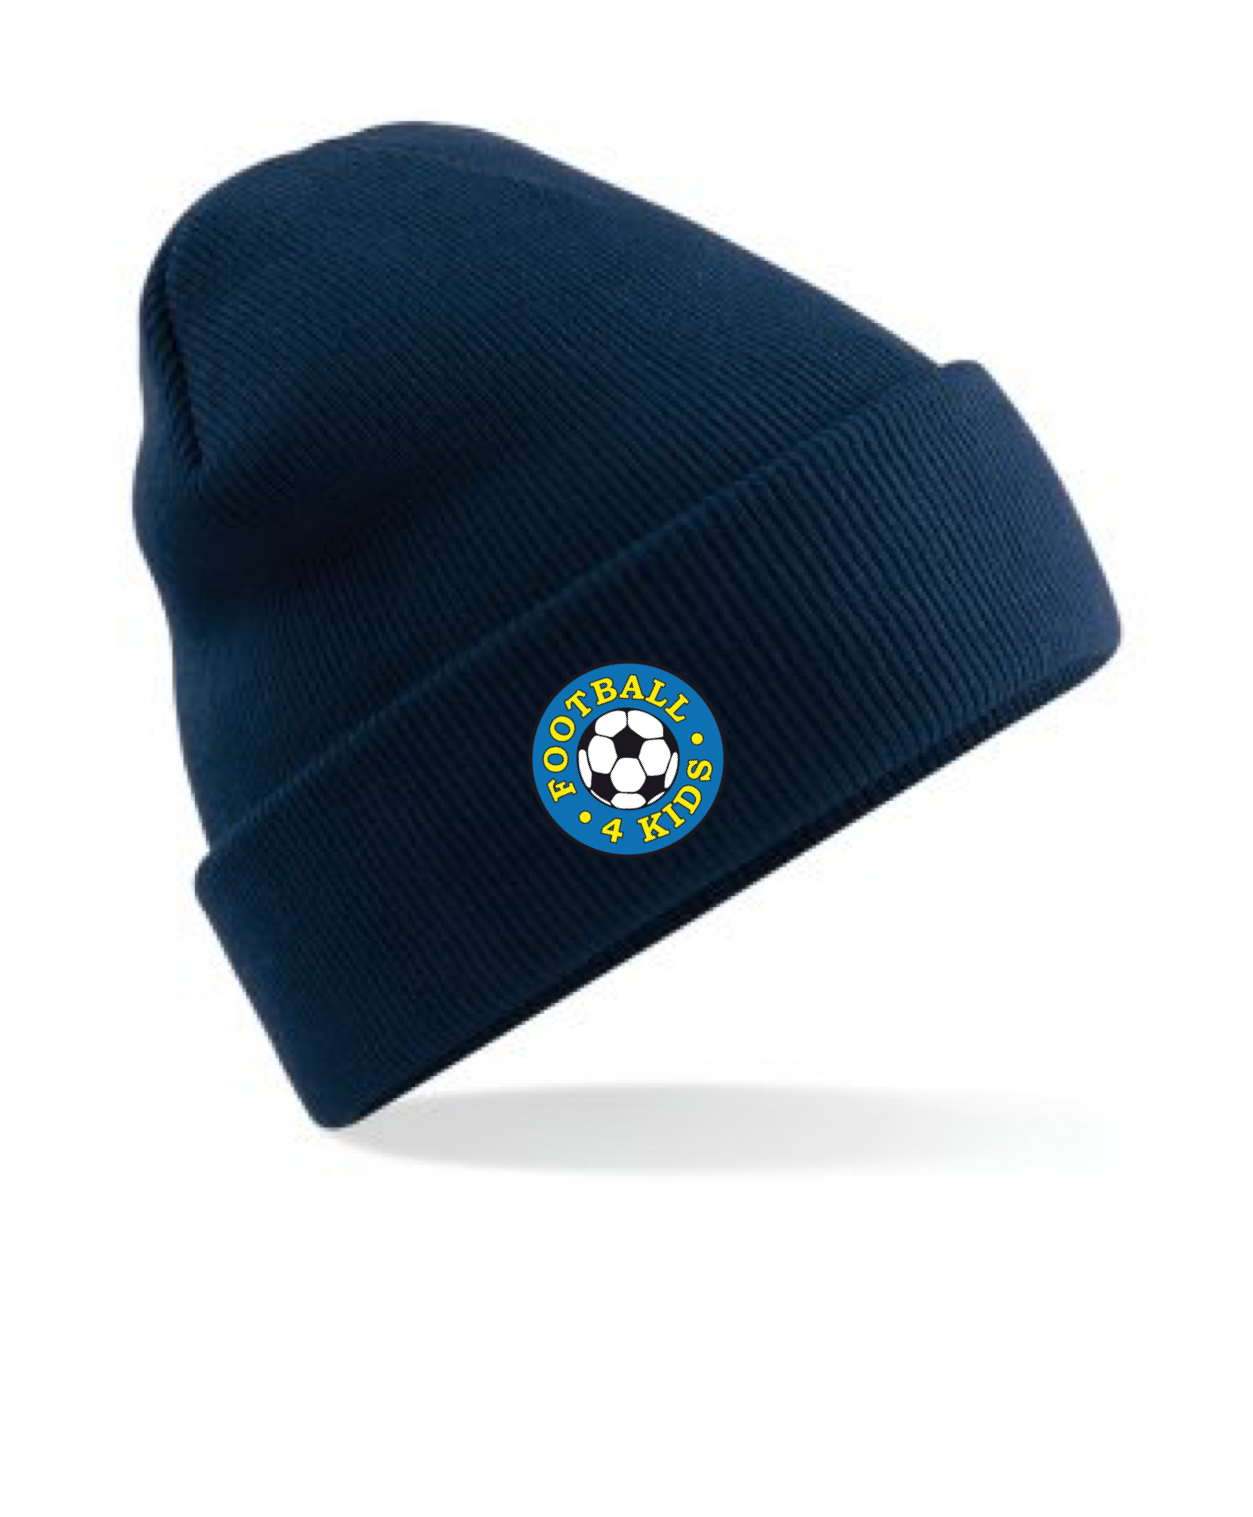 14194d25d SWAZ Football 4 Kids Beanie Hat - Navy